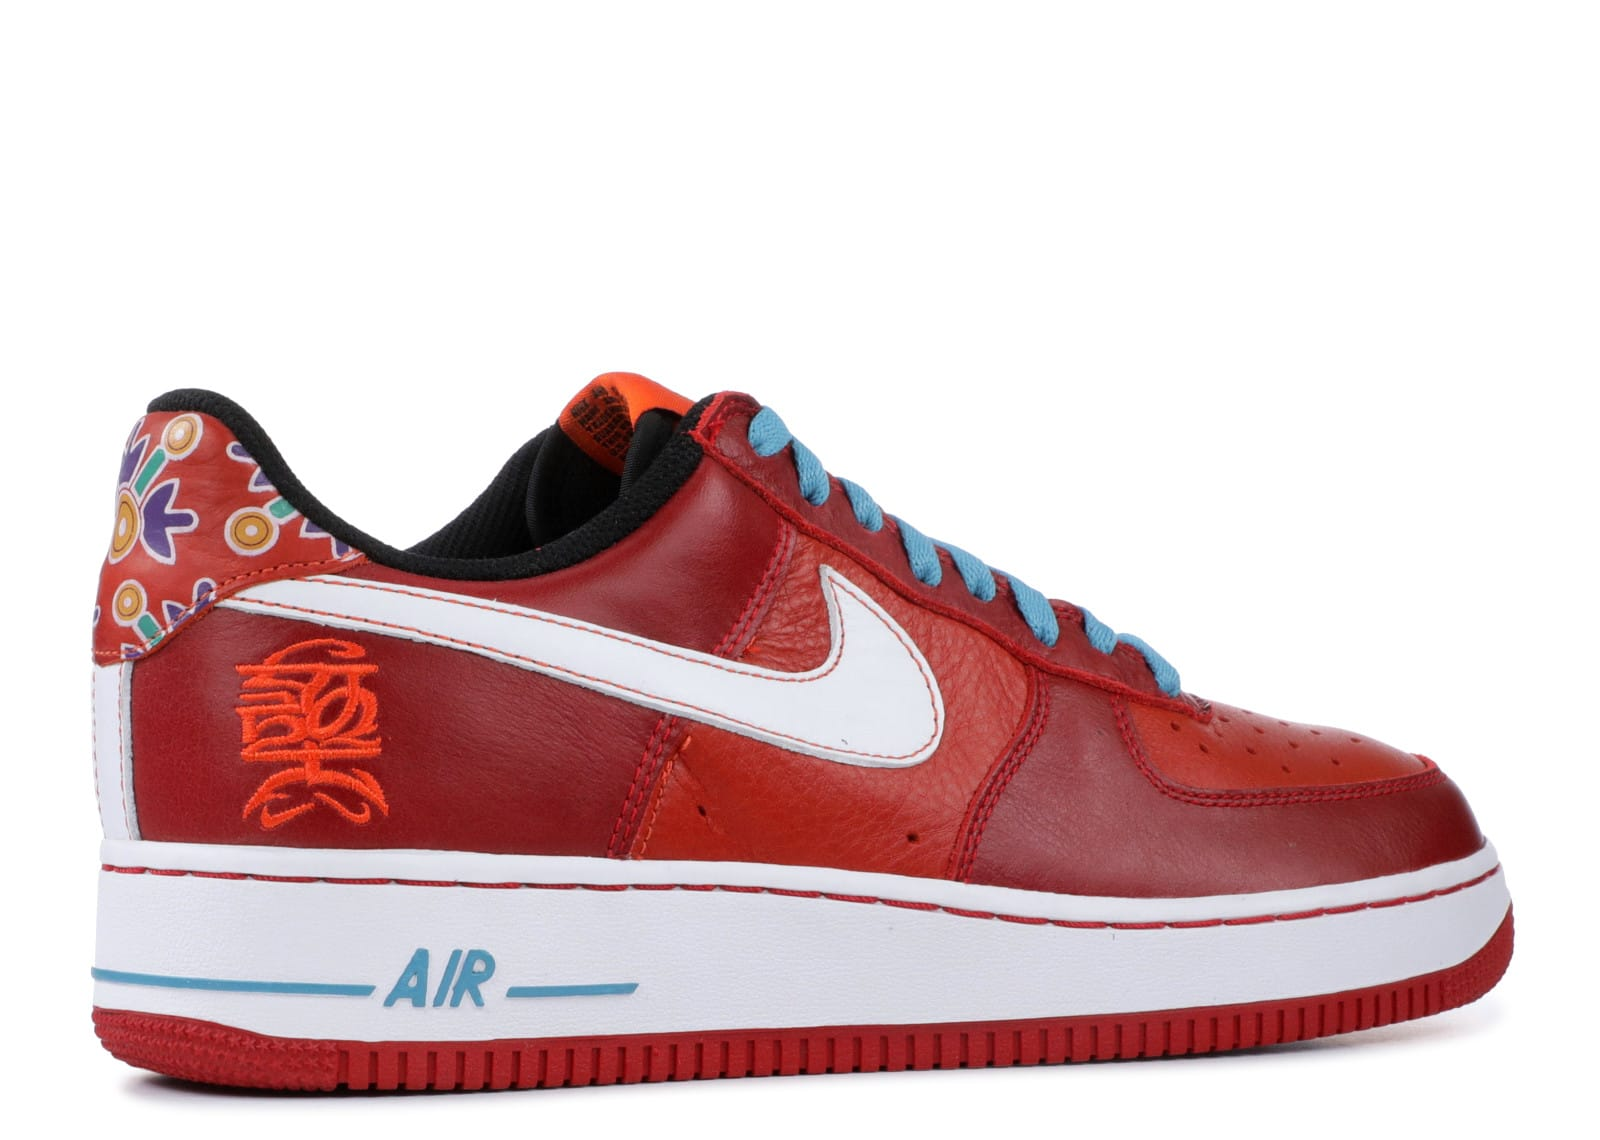 Nike Air Force 1 Low Year of the Dog kickstw